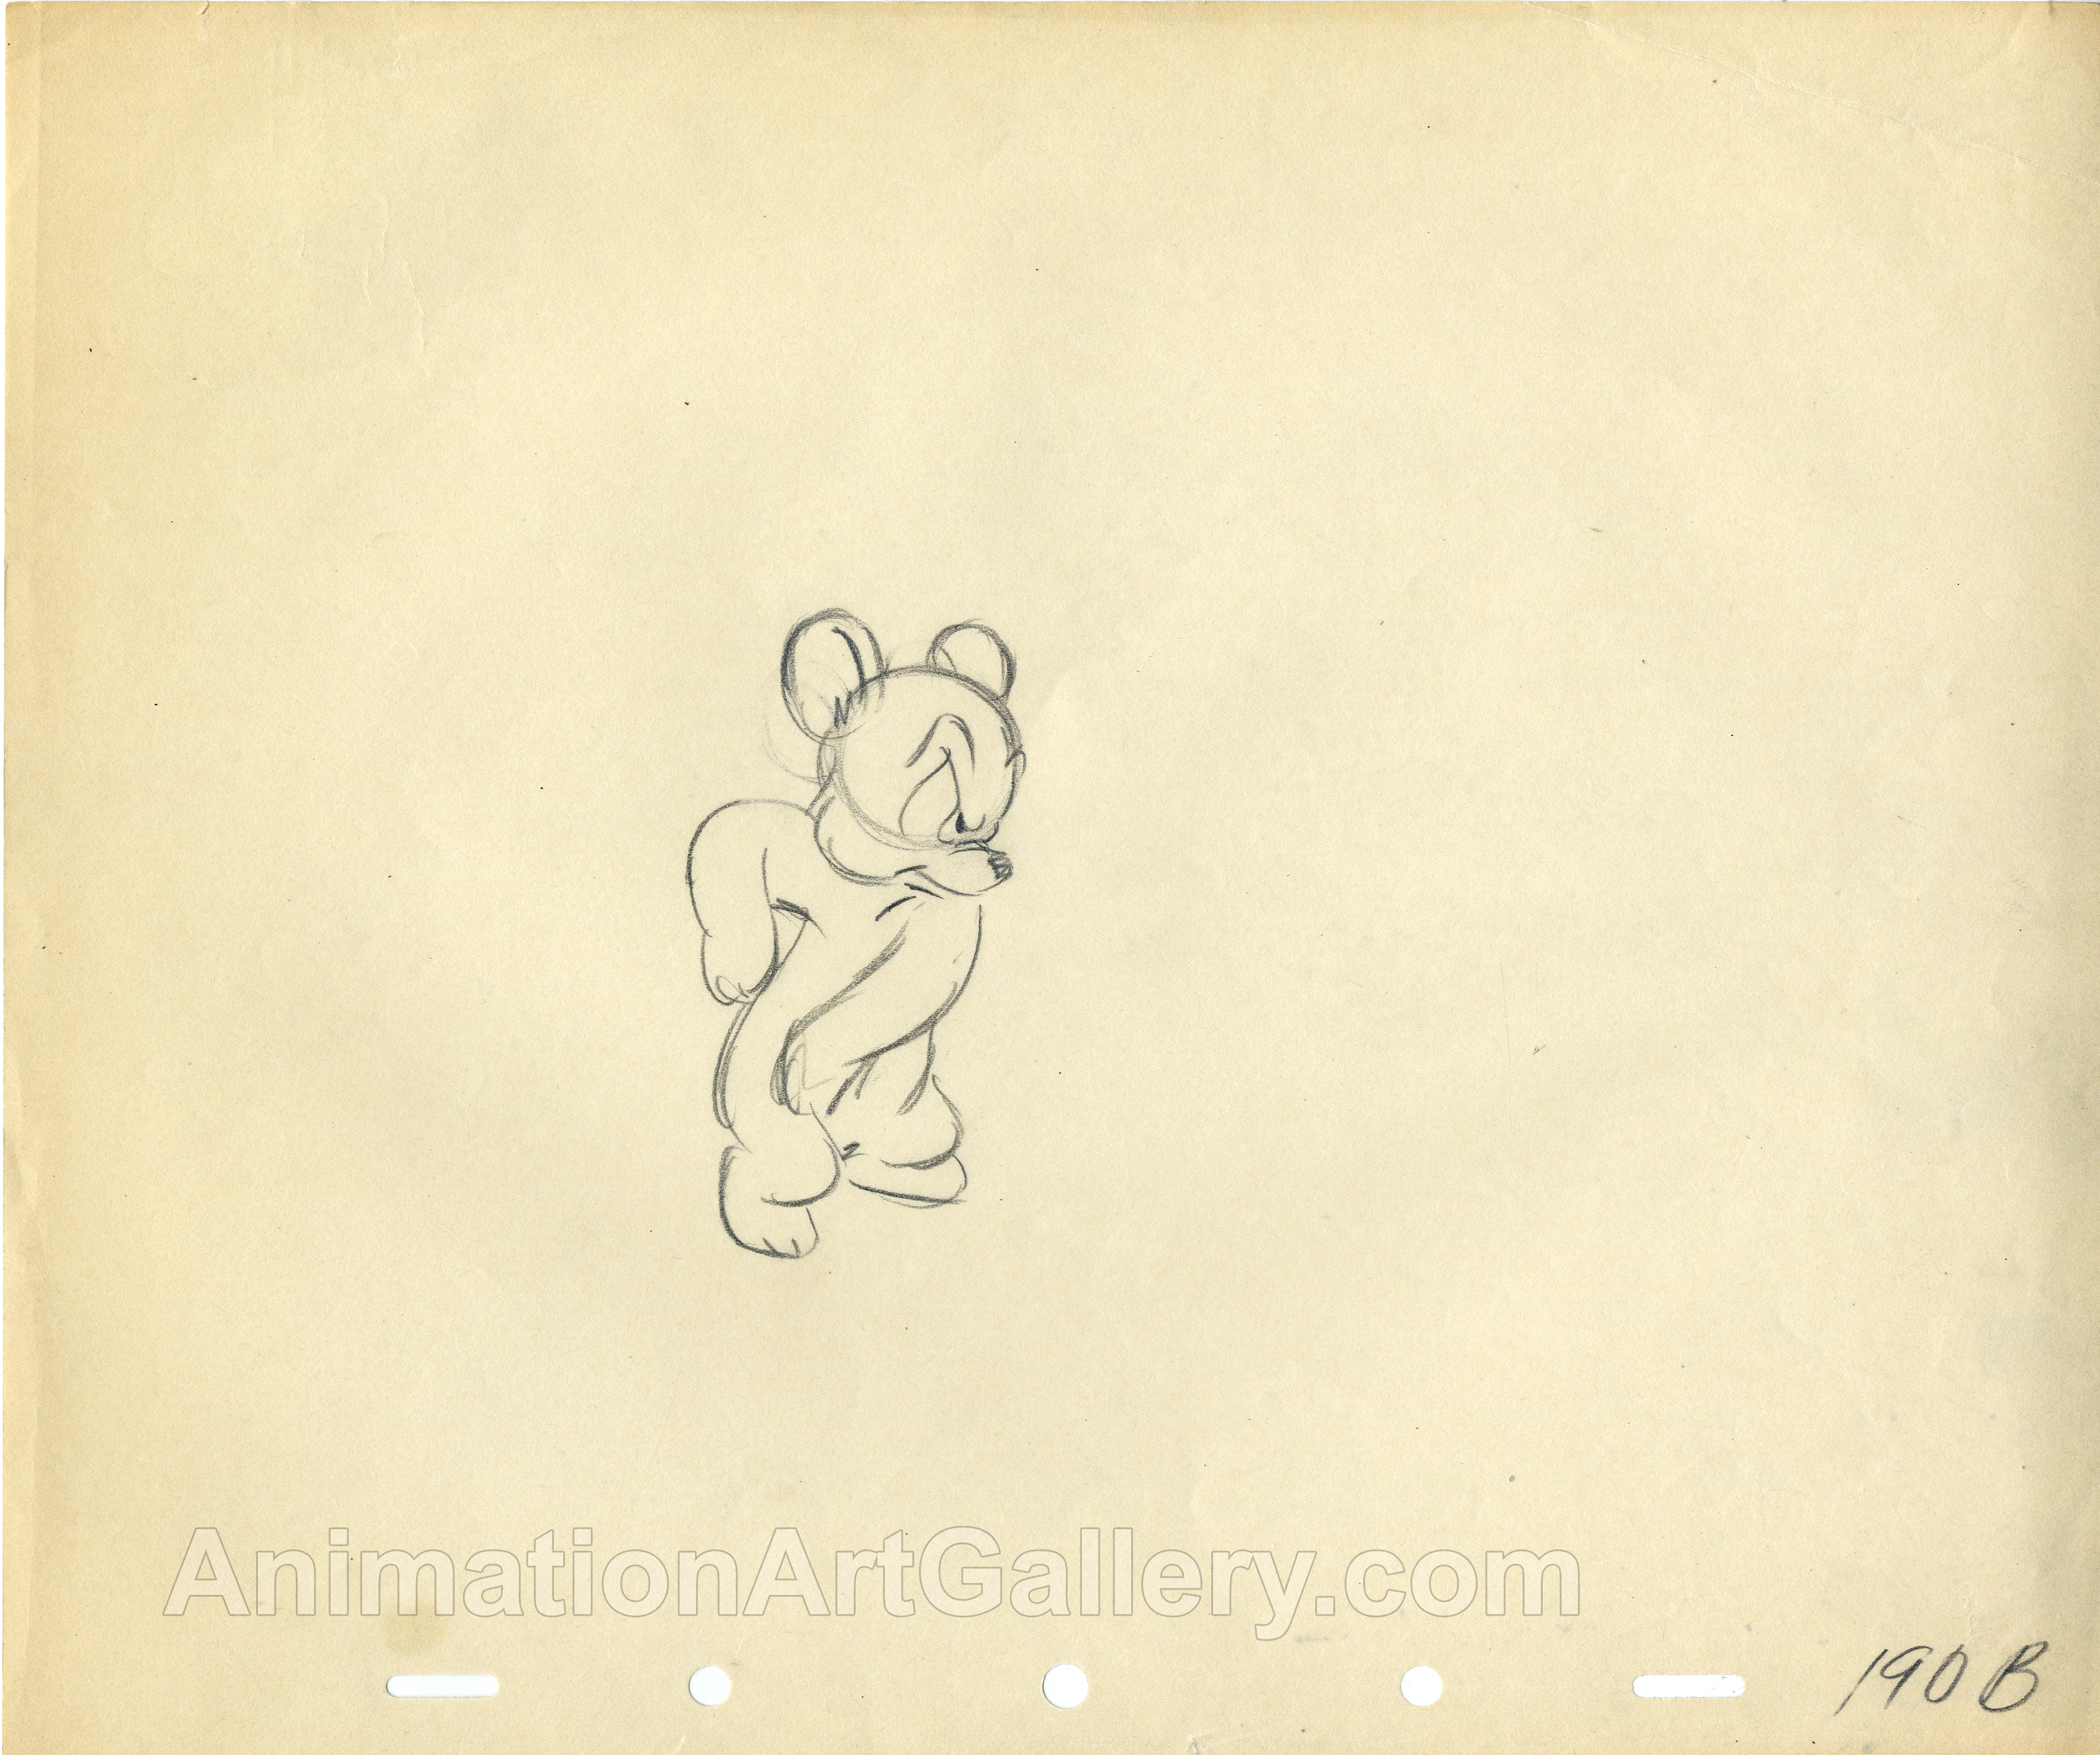 Original Production Drawing of s bear cub from Disney